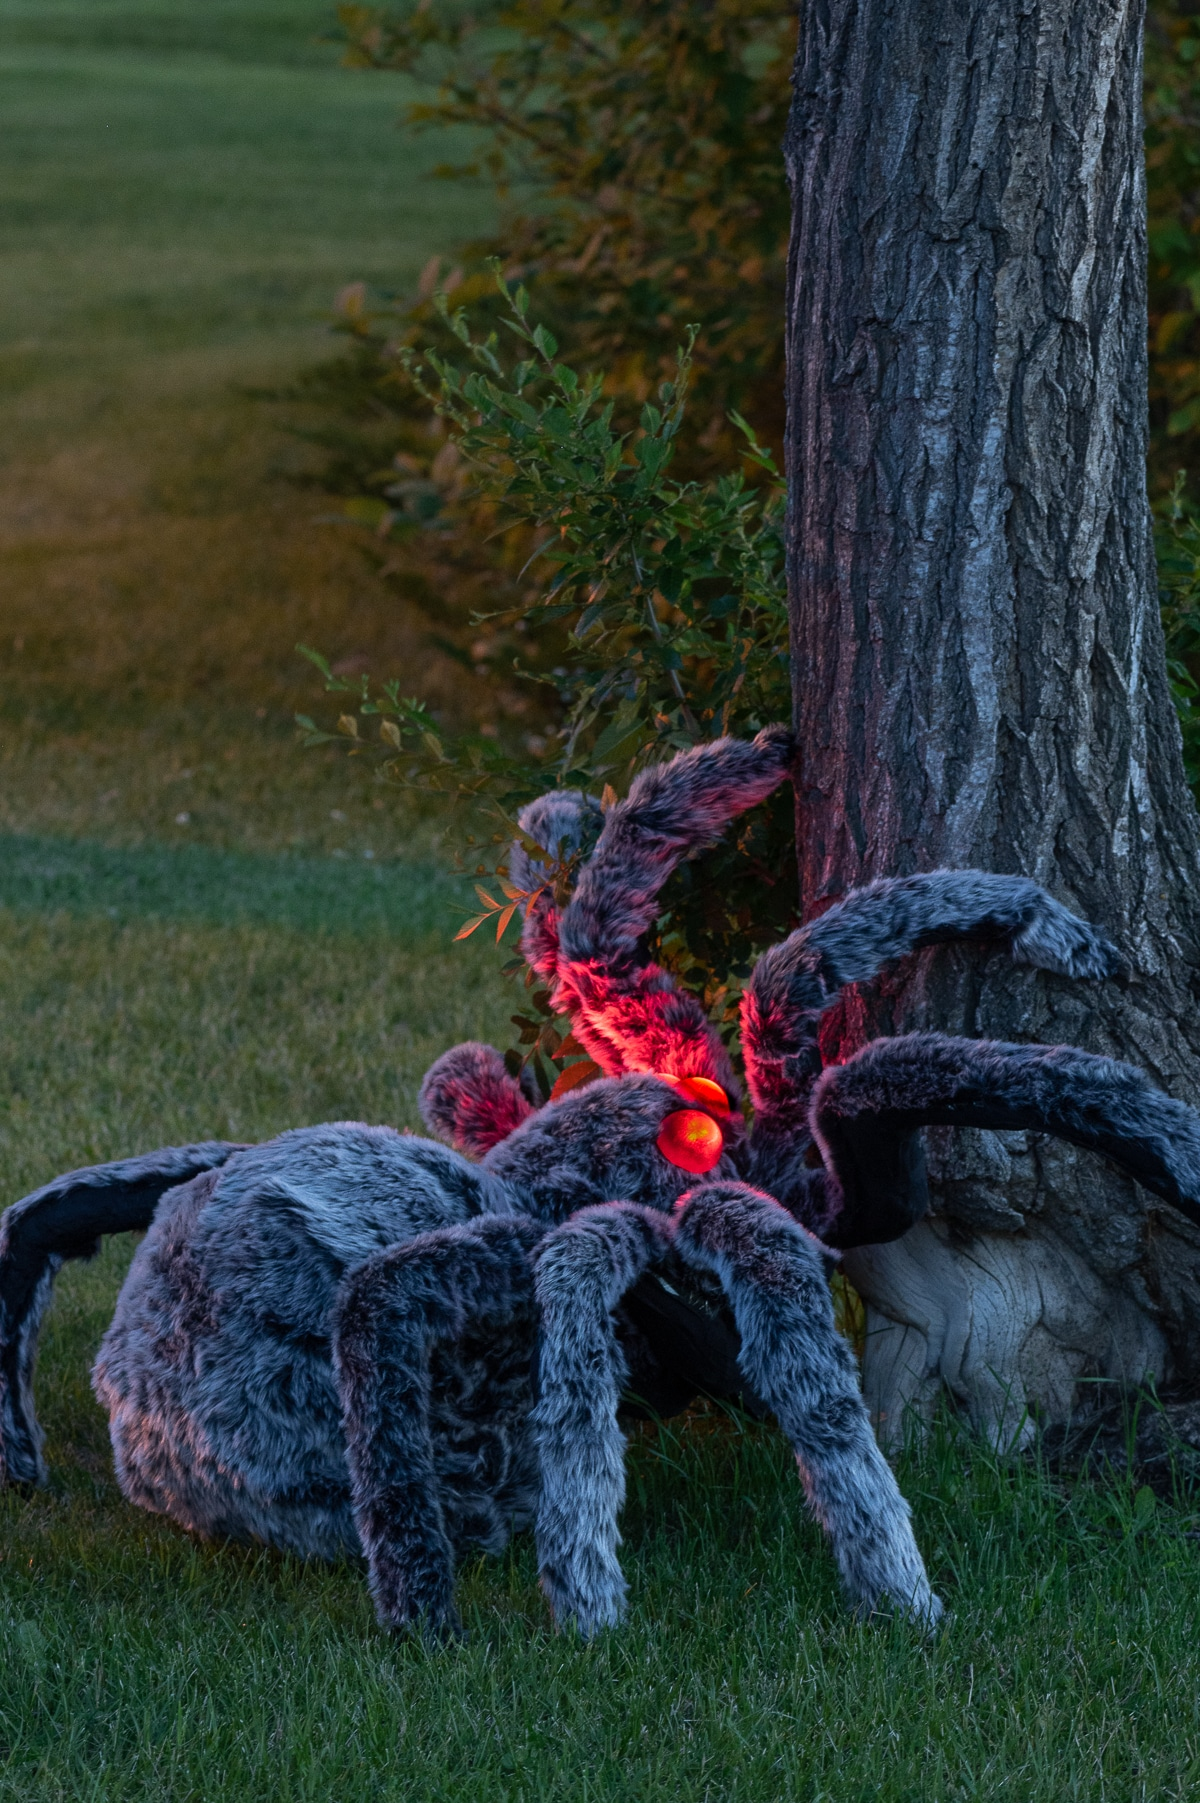 A giant halloween spider with furry legs and glowing red eyes starting to climb tree trunk during twlight.